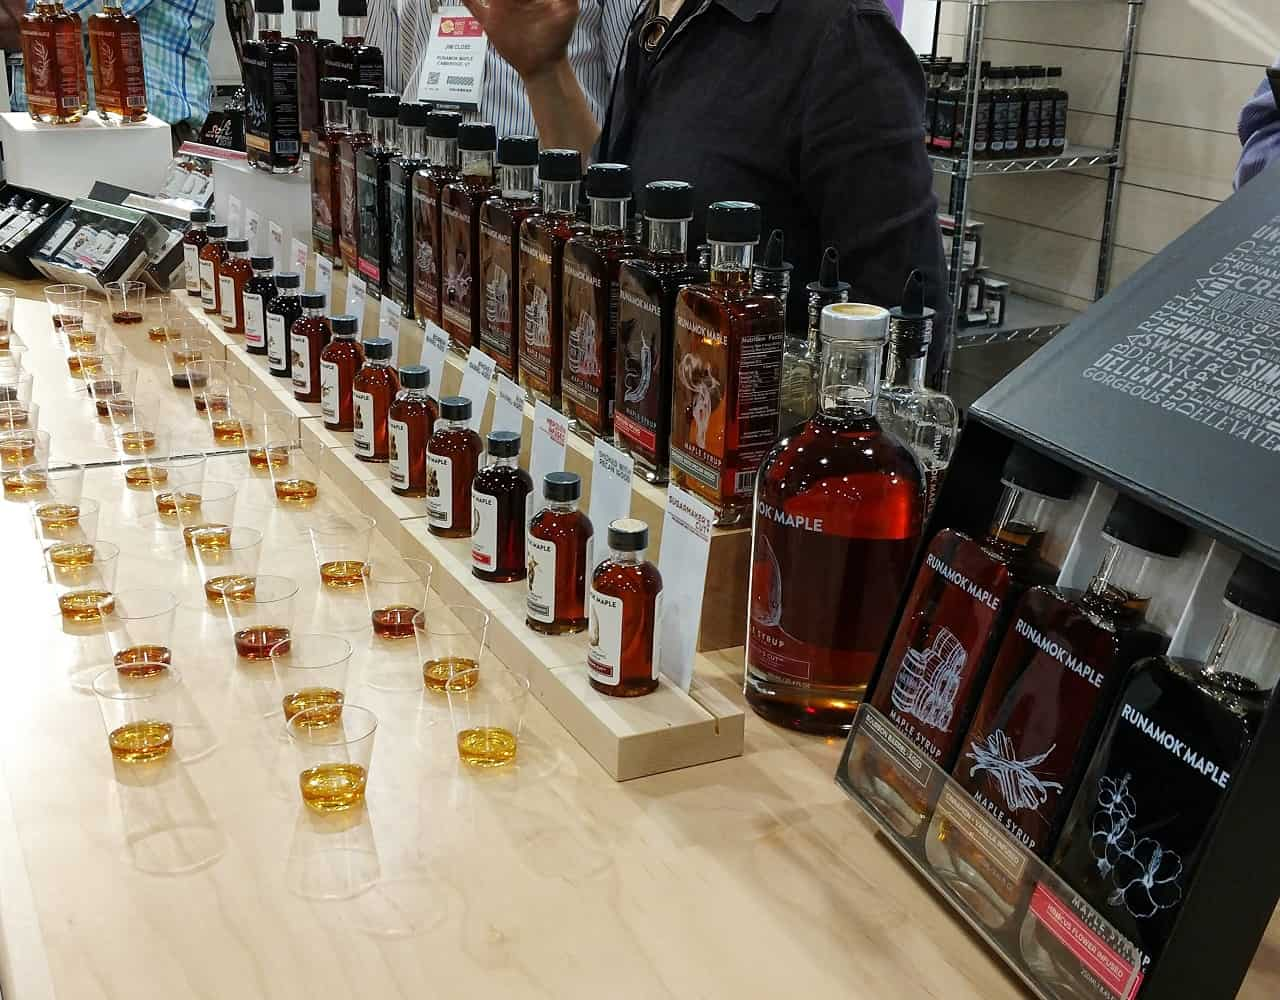 Samples of Runamock Maple Syrup at the Fancy Food Show